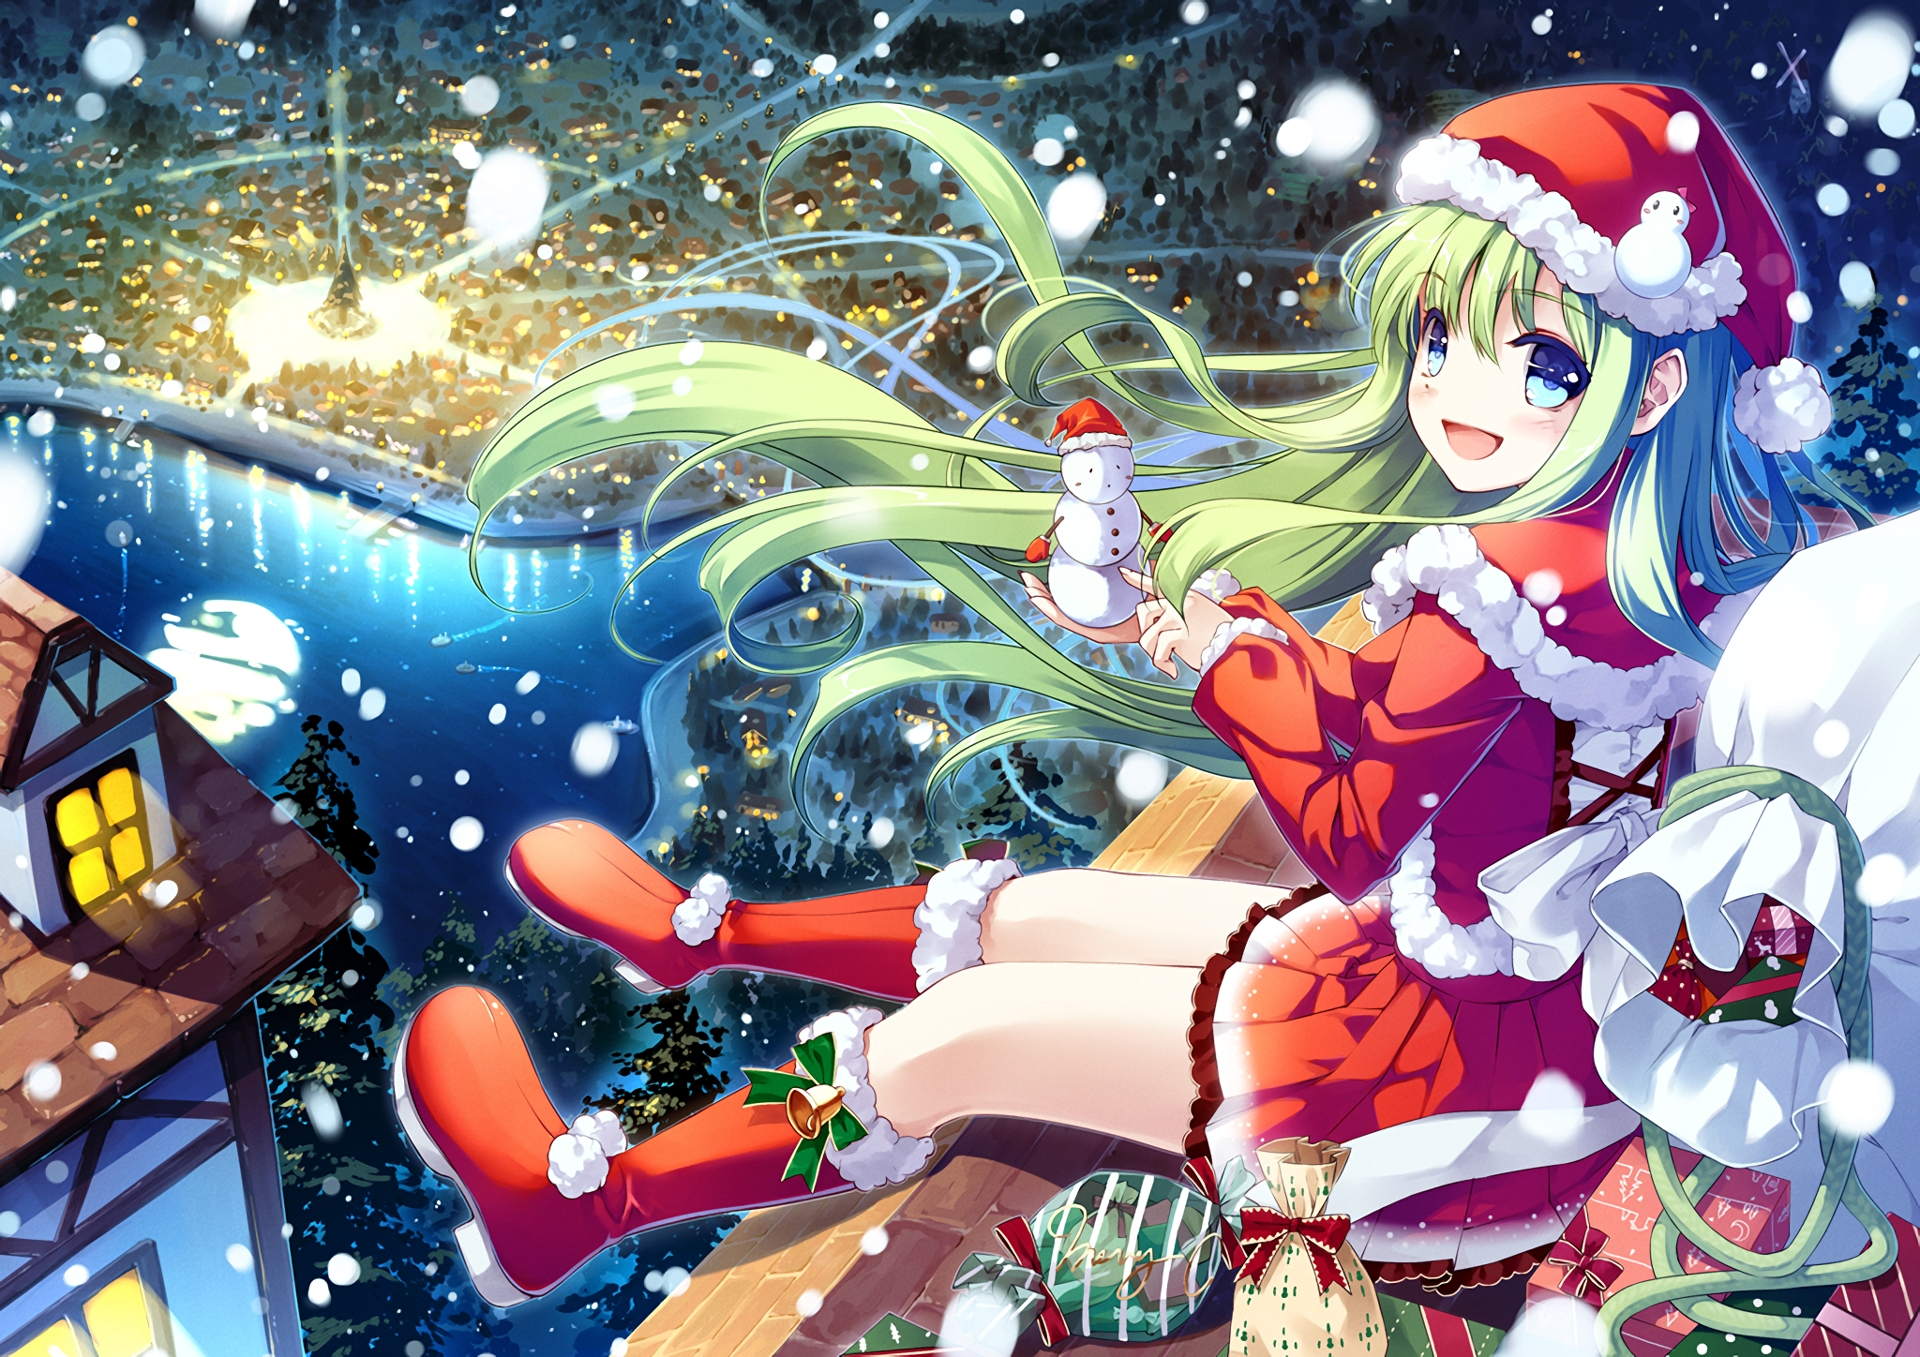 Wallpaper Anime Girl Christmas